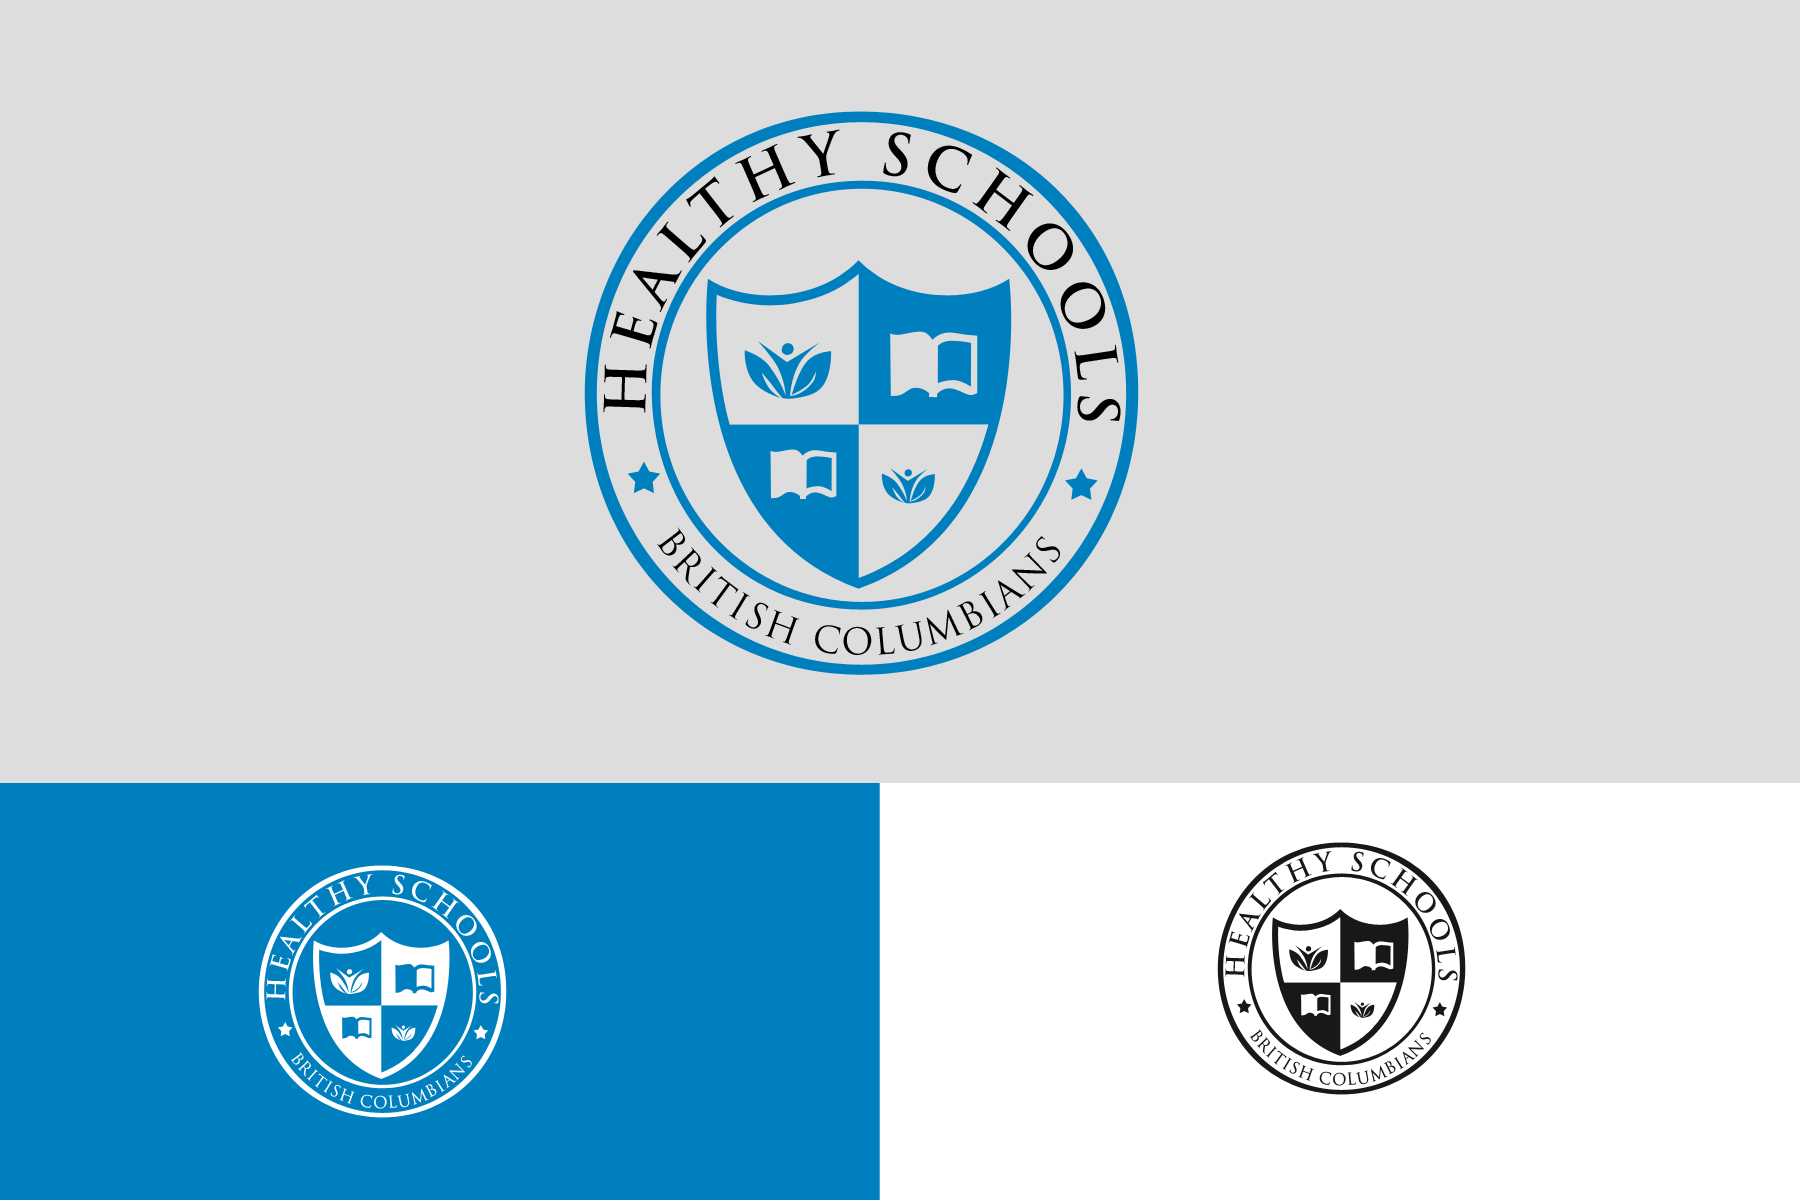 Logo Design by Abraham Romanillos - Entry No. 264 in the Logo Design Contest SImple, Creative and Clean Logo Design for Healthy Schools British Columbia, Canada.